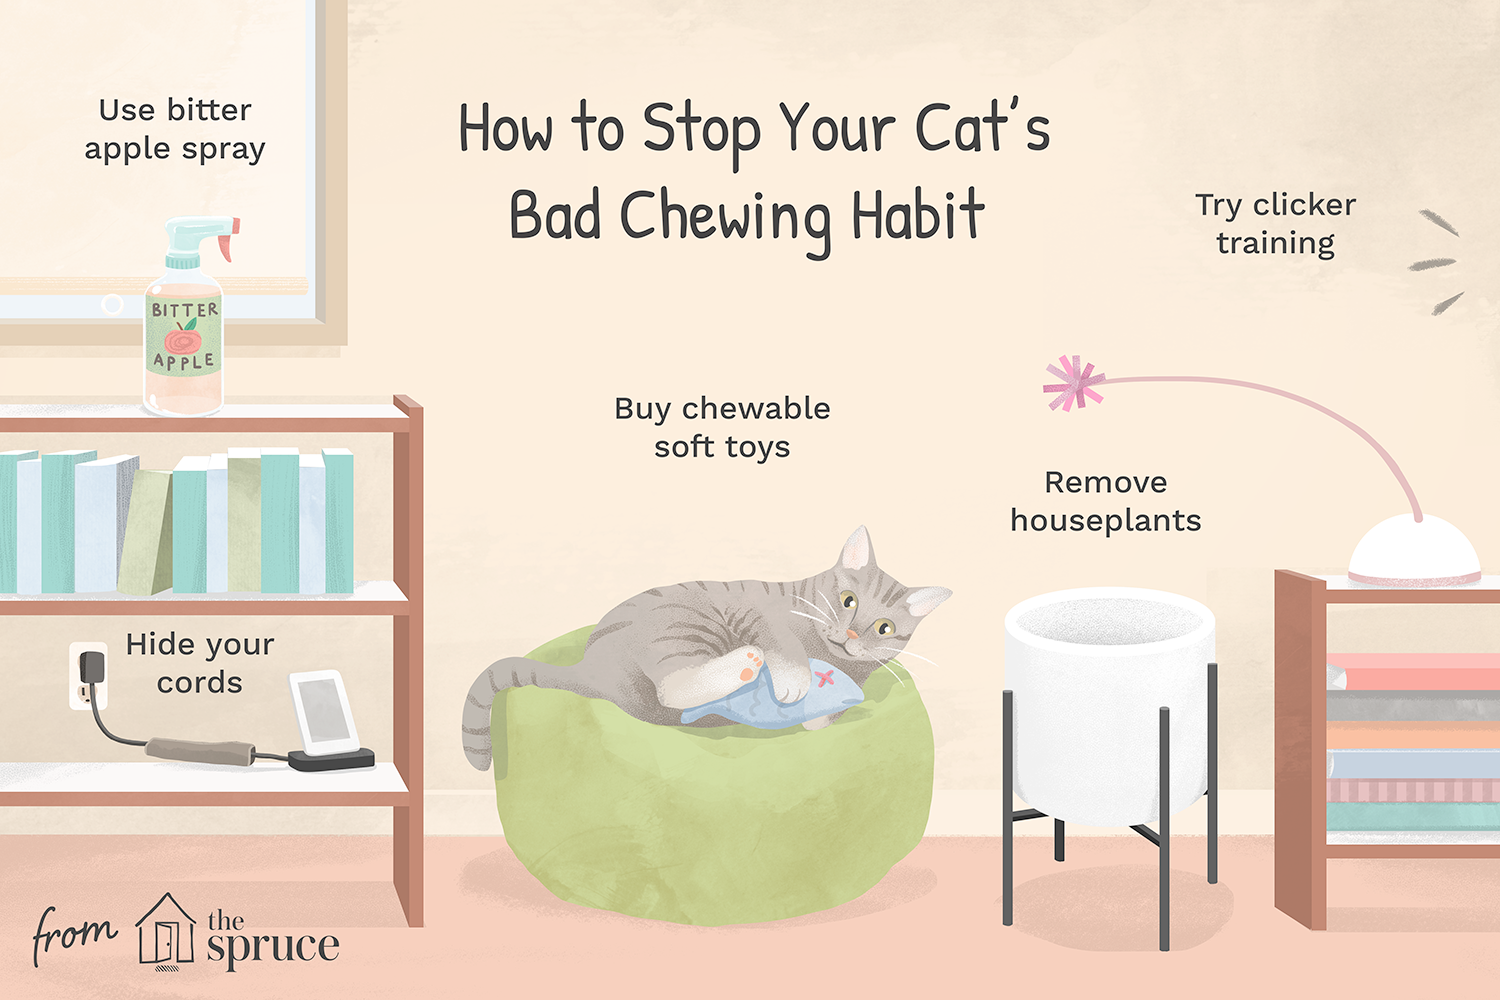 how to stop your cat's bad chewing habit illustration